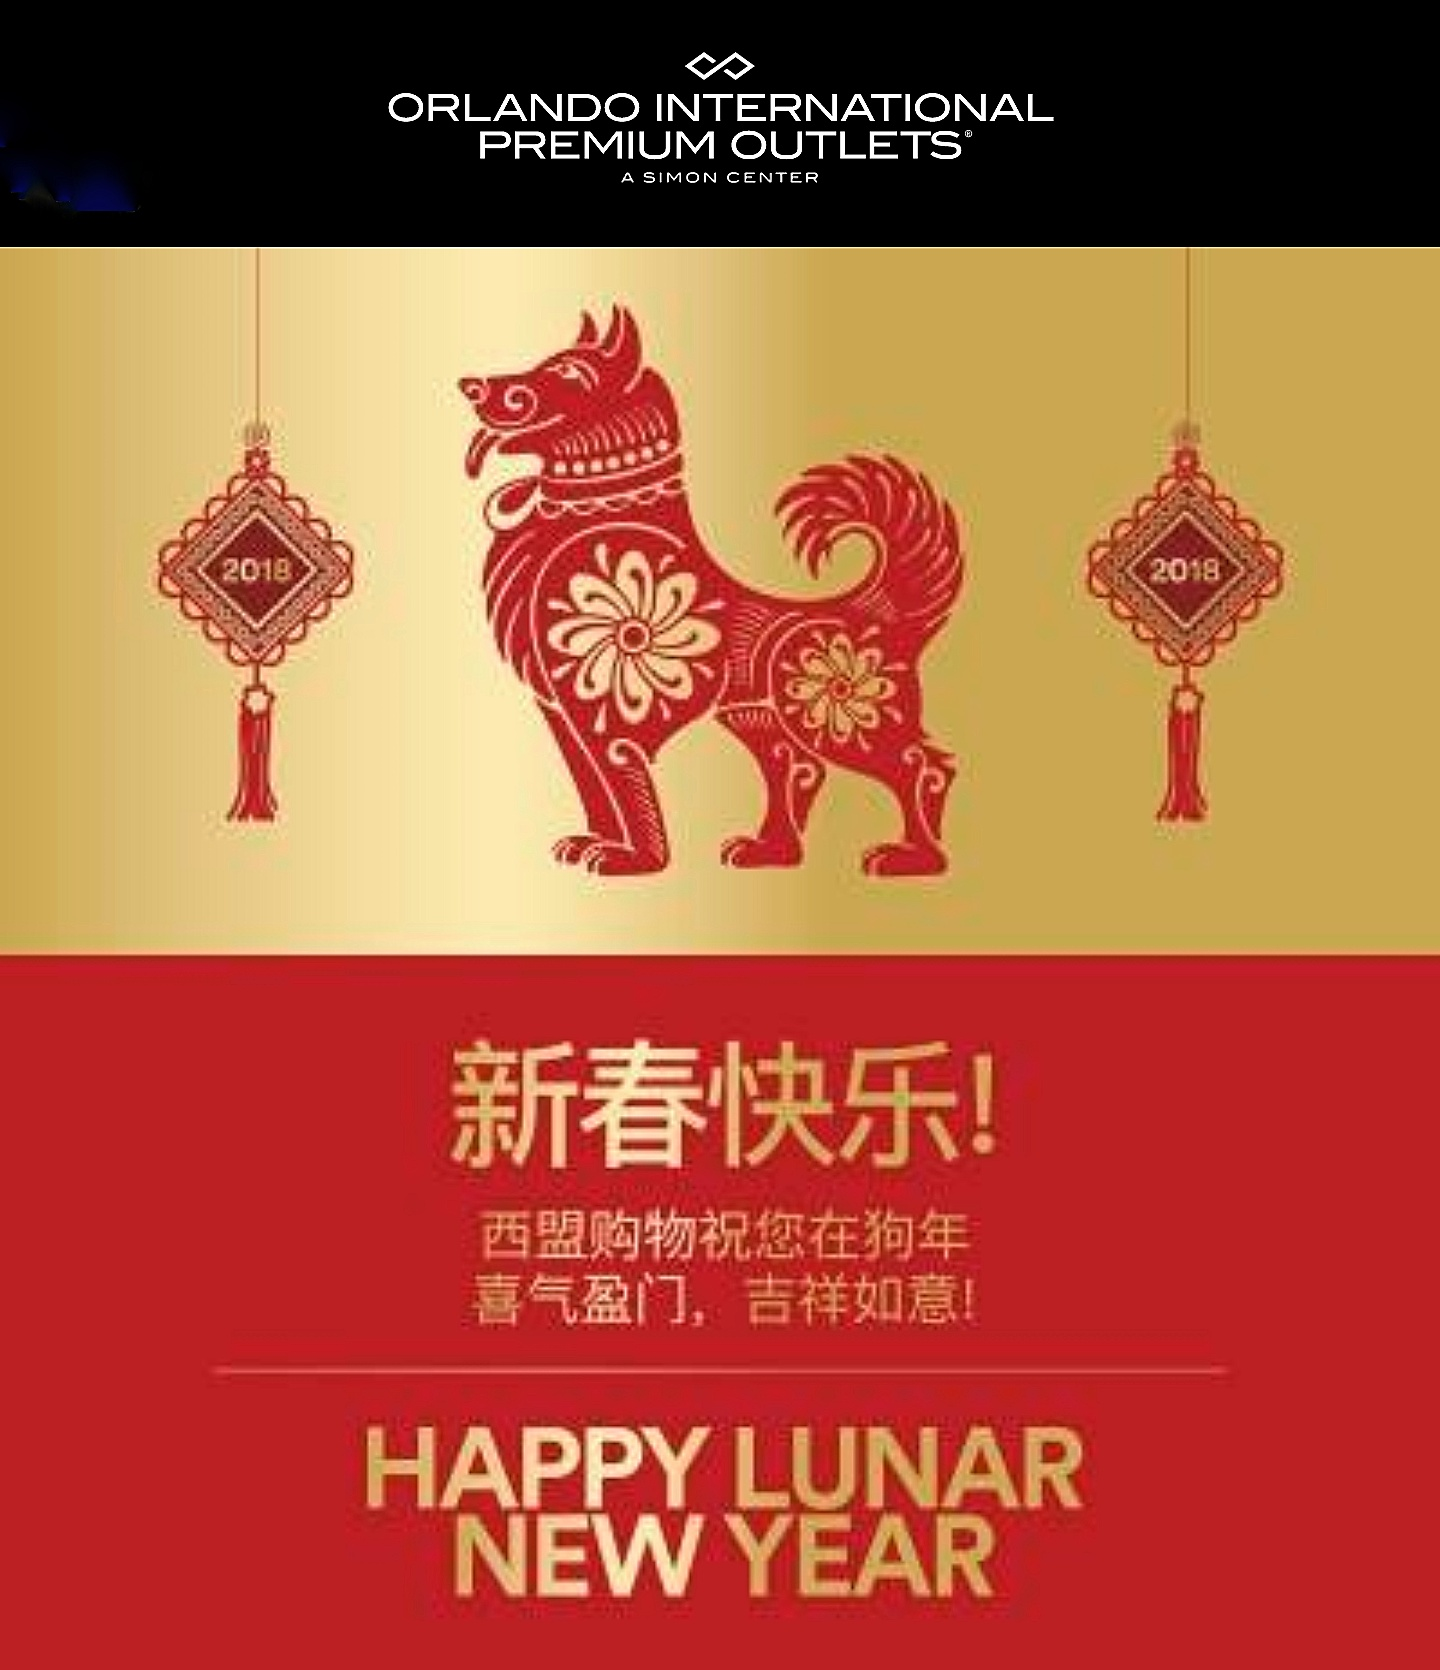 Orlando Vineland Premium Outlets Chinese New Year